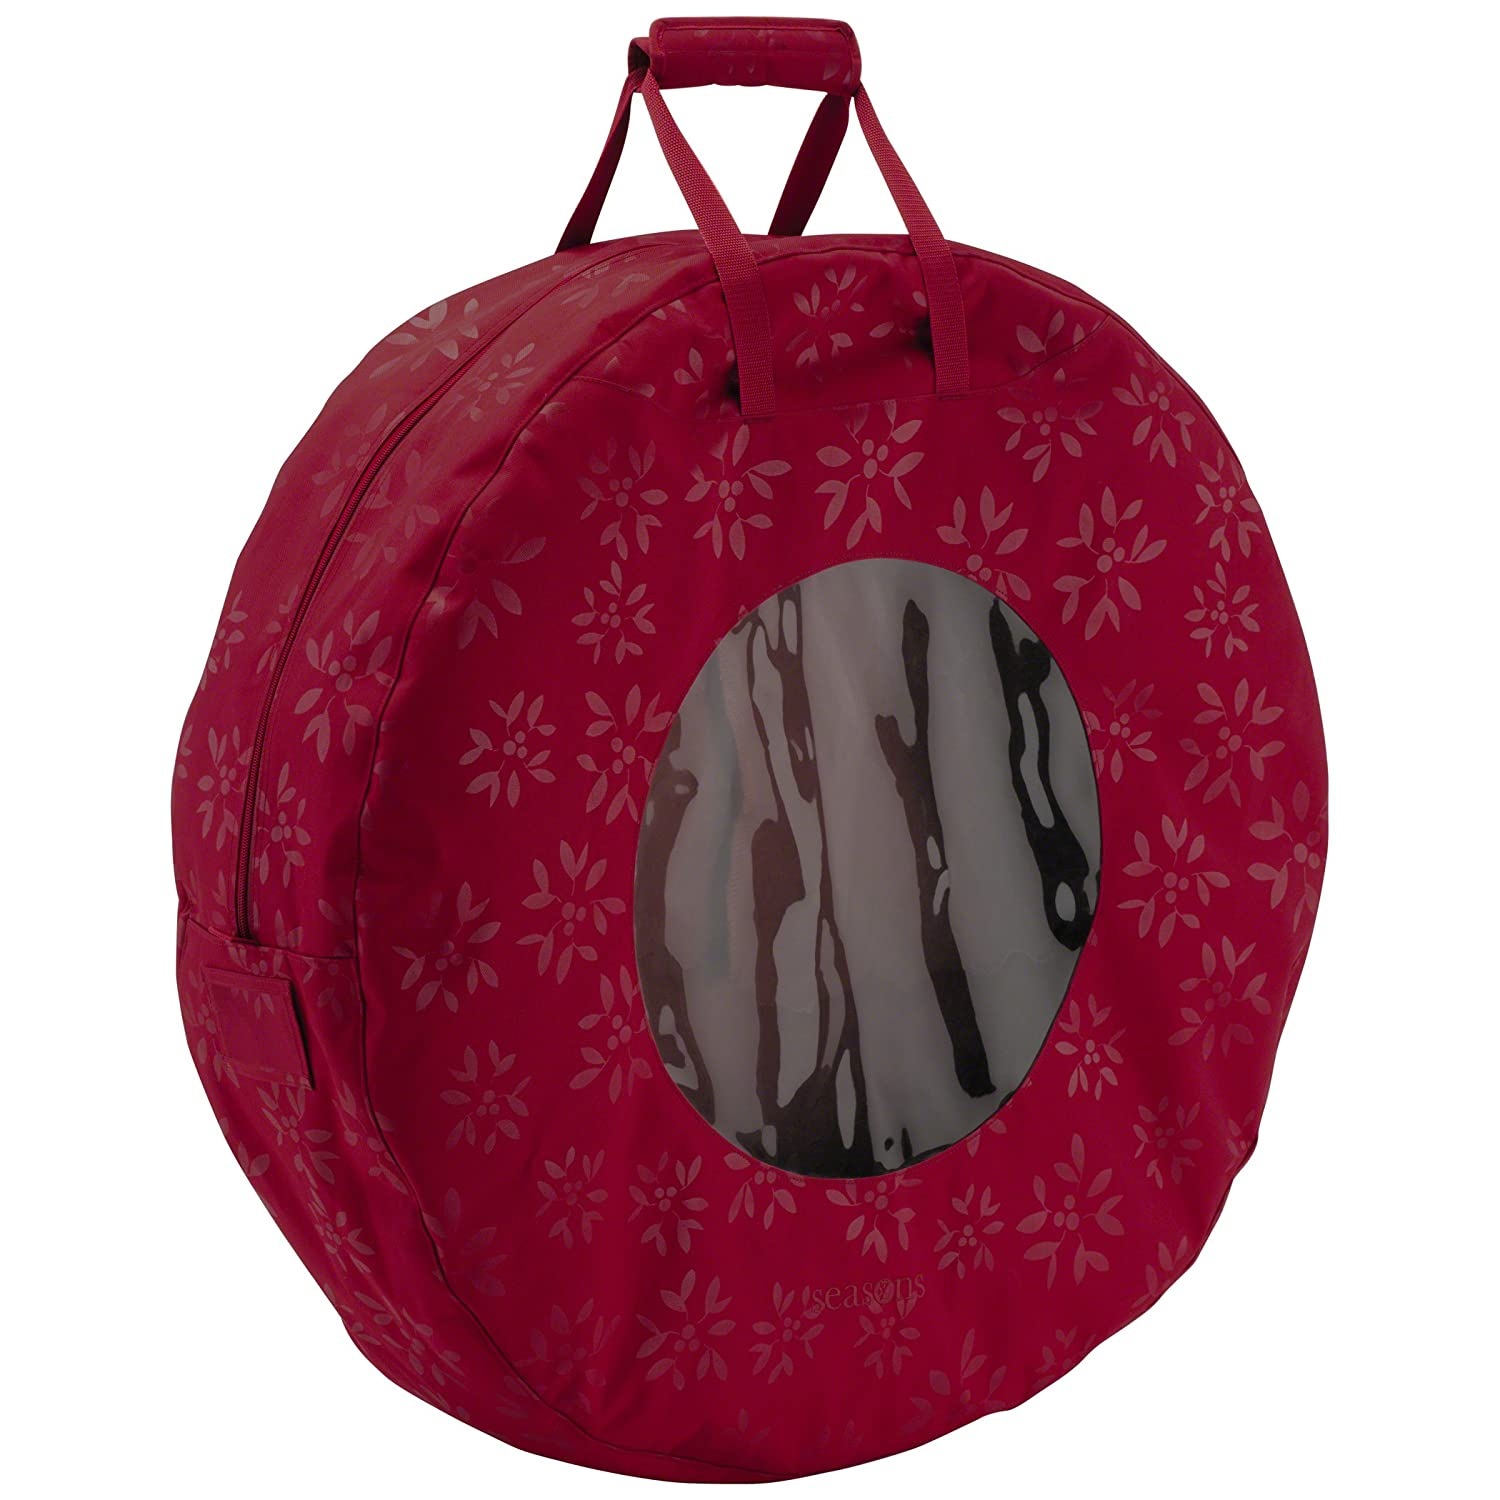 Classic Accessories Seasons Holiday Wreath Storage Bag, Medium 57-001-034301-00